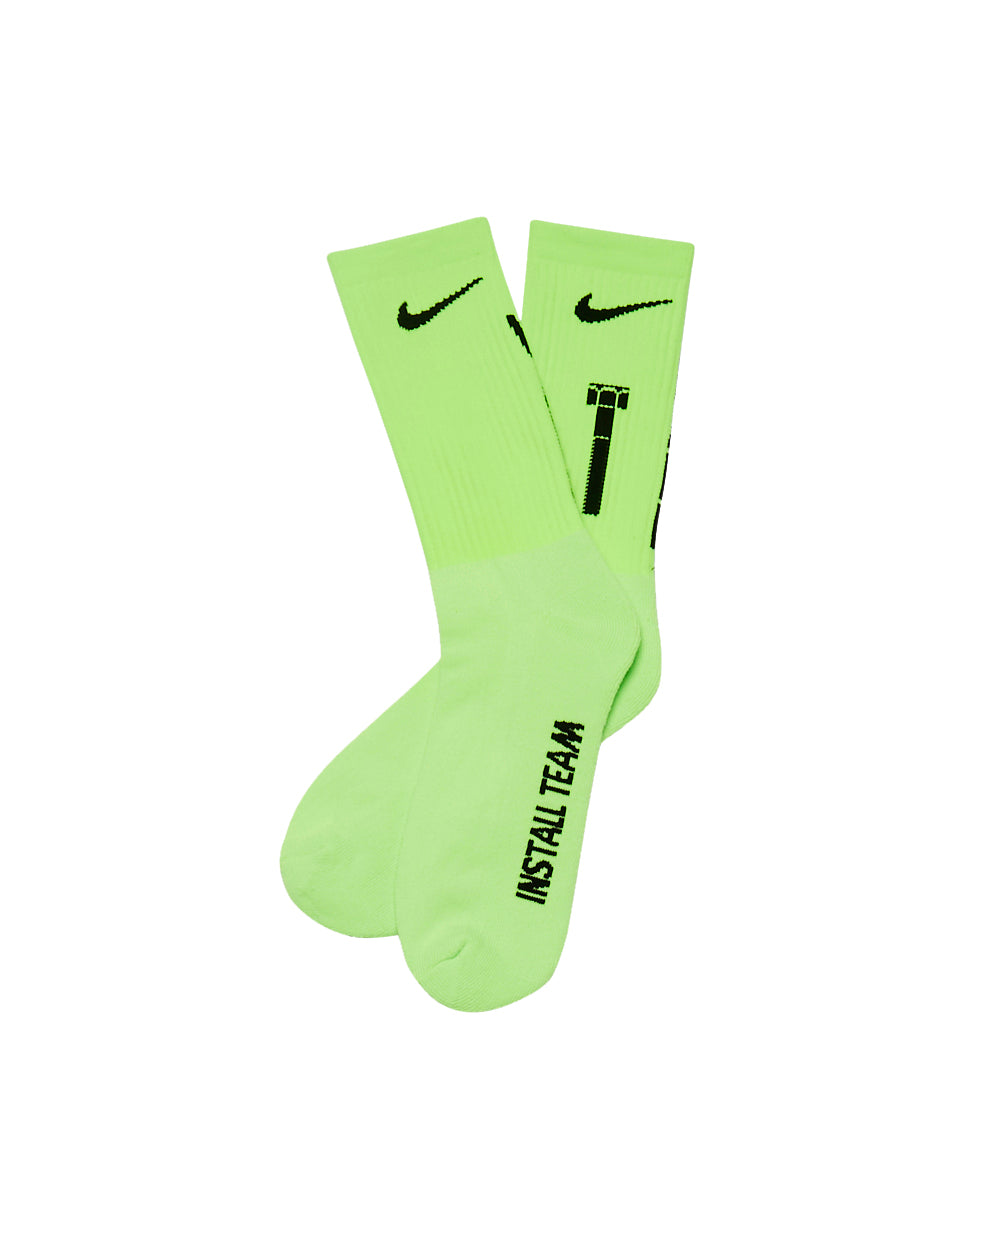 Hardware Socks Neon Green